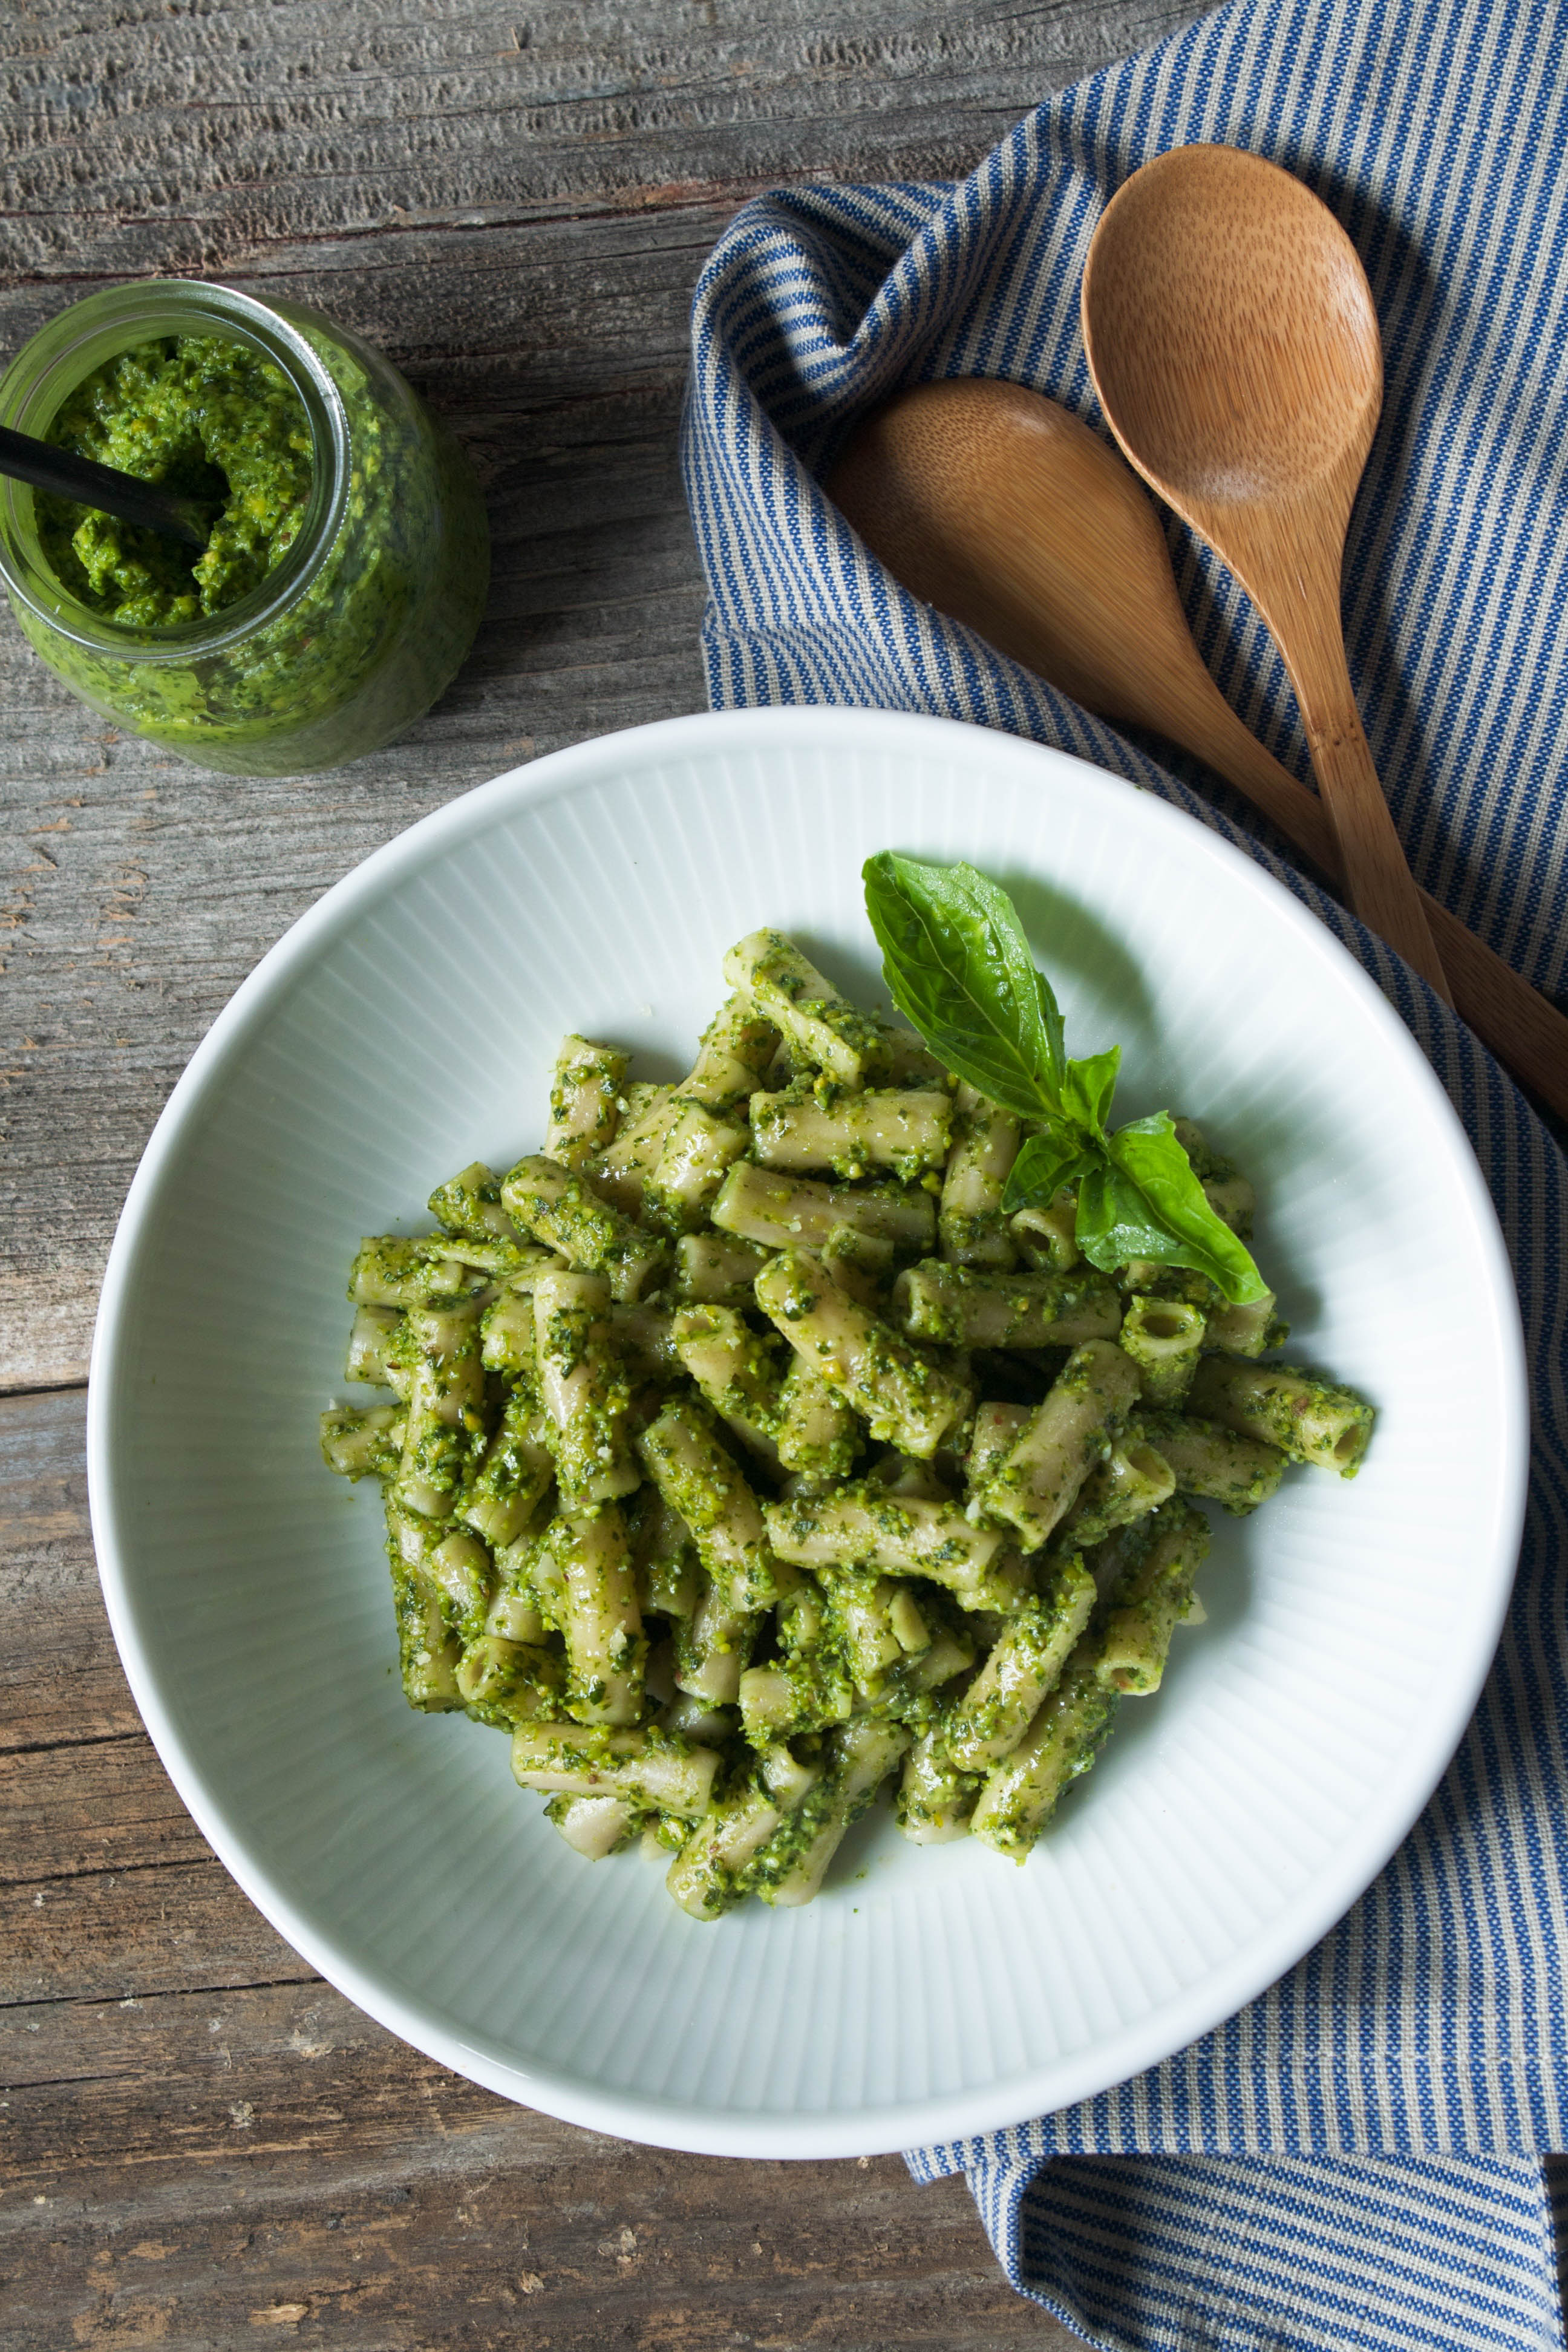 Photo of pesto pasta in a white bowl on a wood table